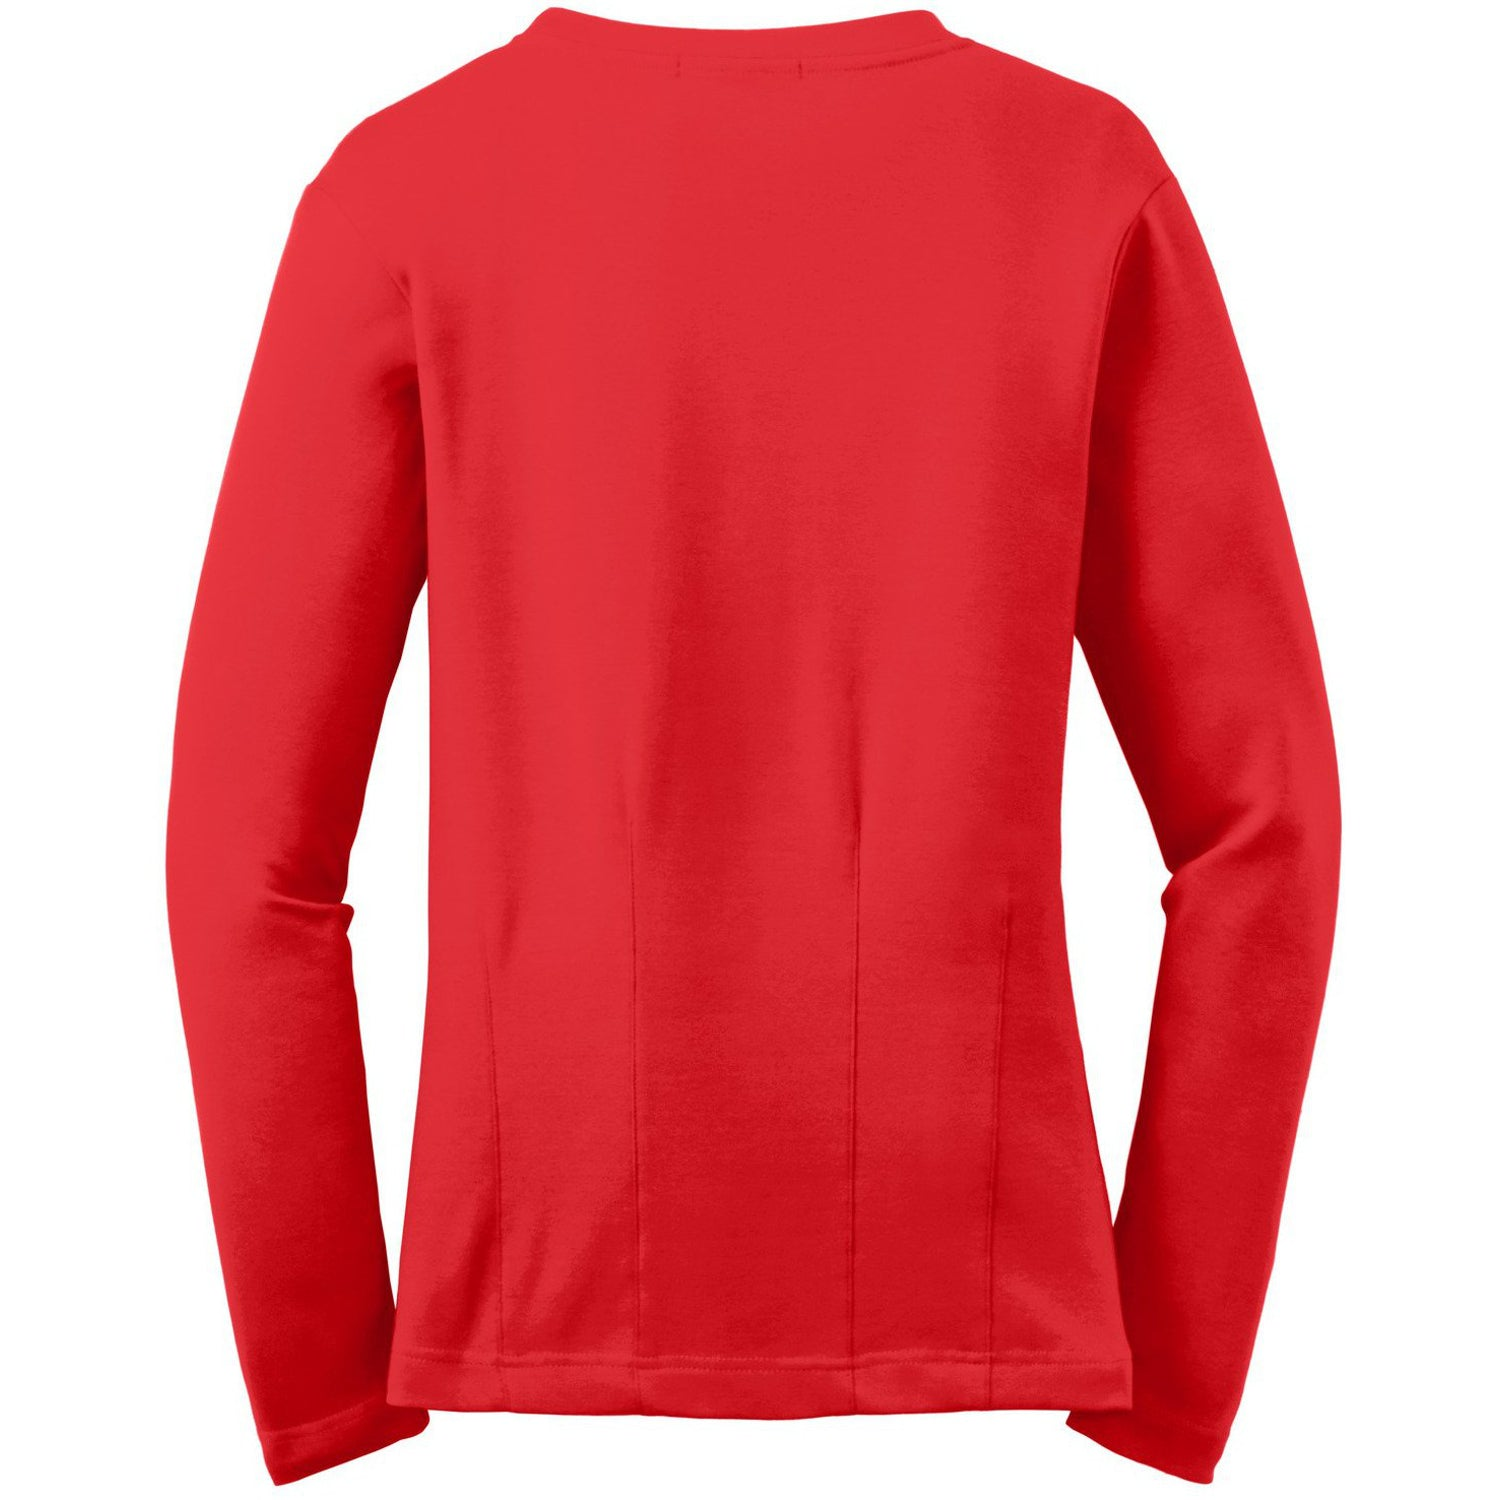 Mafoose Women's Stretch Cotton Cardigan Scarlet Red-Back